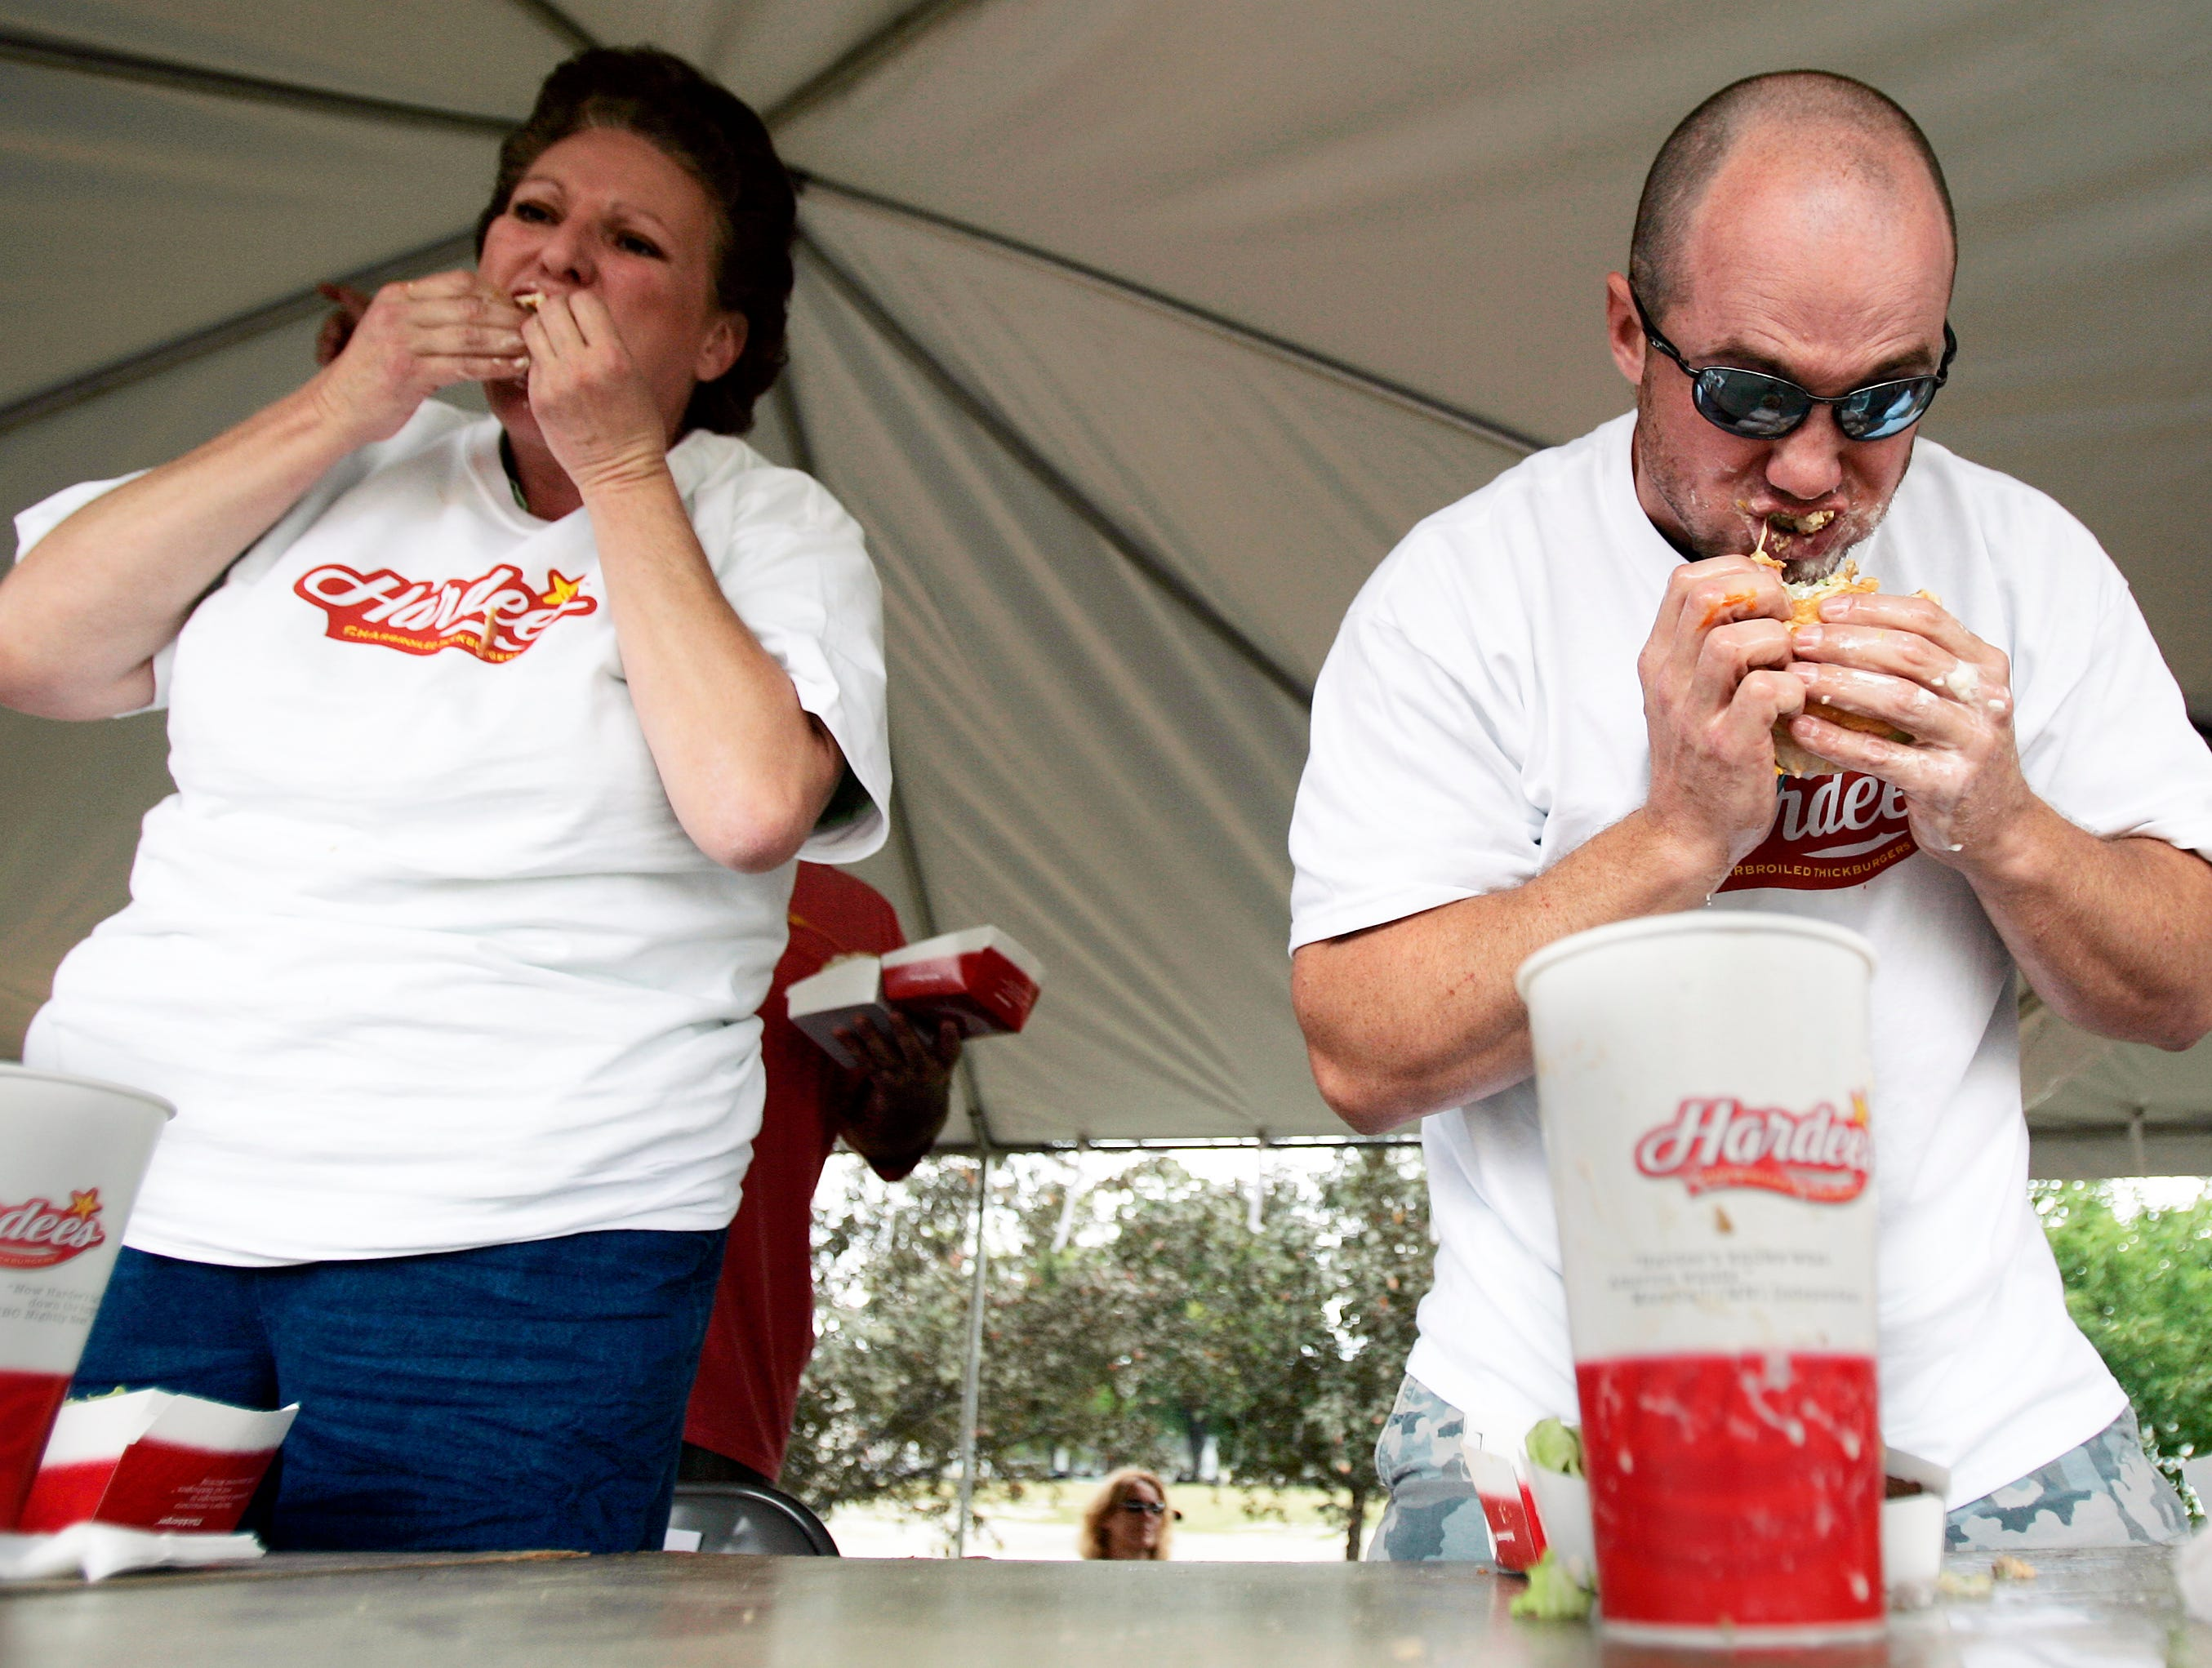 "Betty Morgan of Seymour, left, and Mike ""The Hammer"" Fitzgerald of Menasha, right, bite into their burgers during the Hardee's Hamburger Eating Contest during the 20th Annual Burger Fest in Seymour, Wis., Saturday, Aug. 9, 2008. Morgan was the only female competitor. Fitzgerald set a new event record by eating seven and one-third Hardee's Thickburgers in under 12 minutes. Post-Crescent photo by M.P. King."